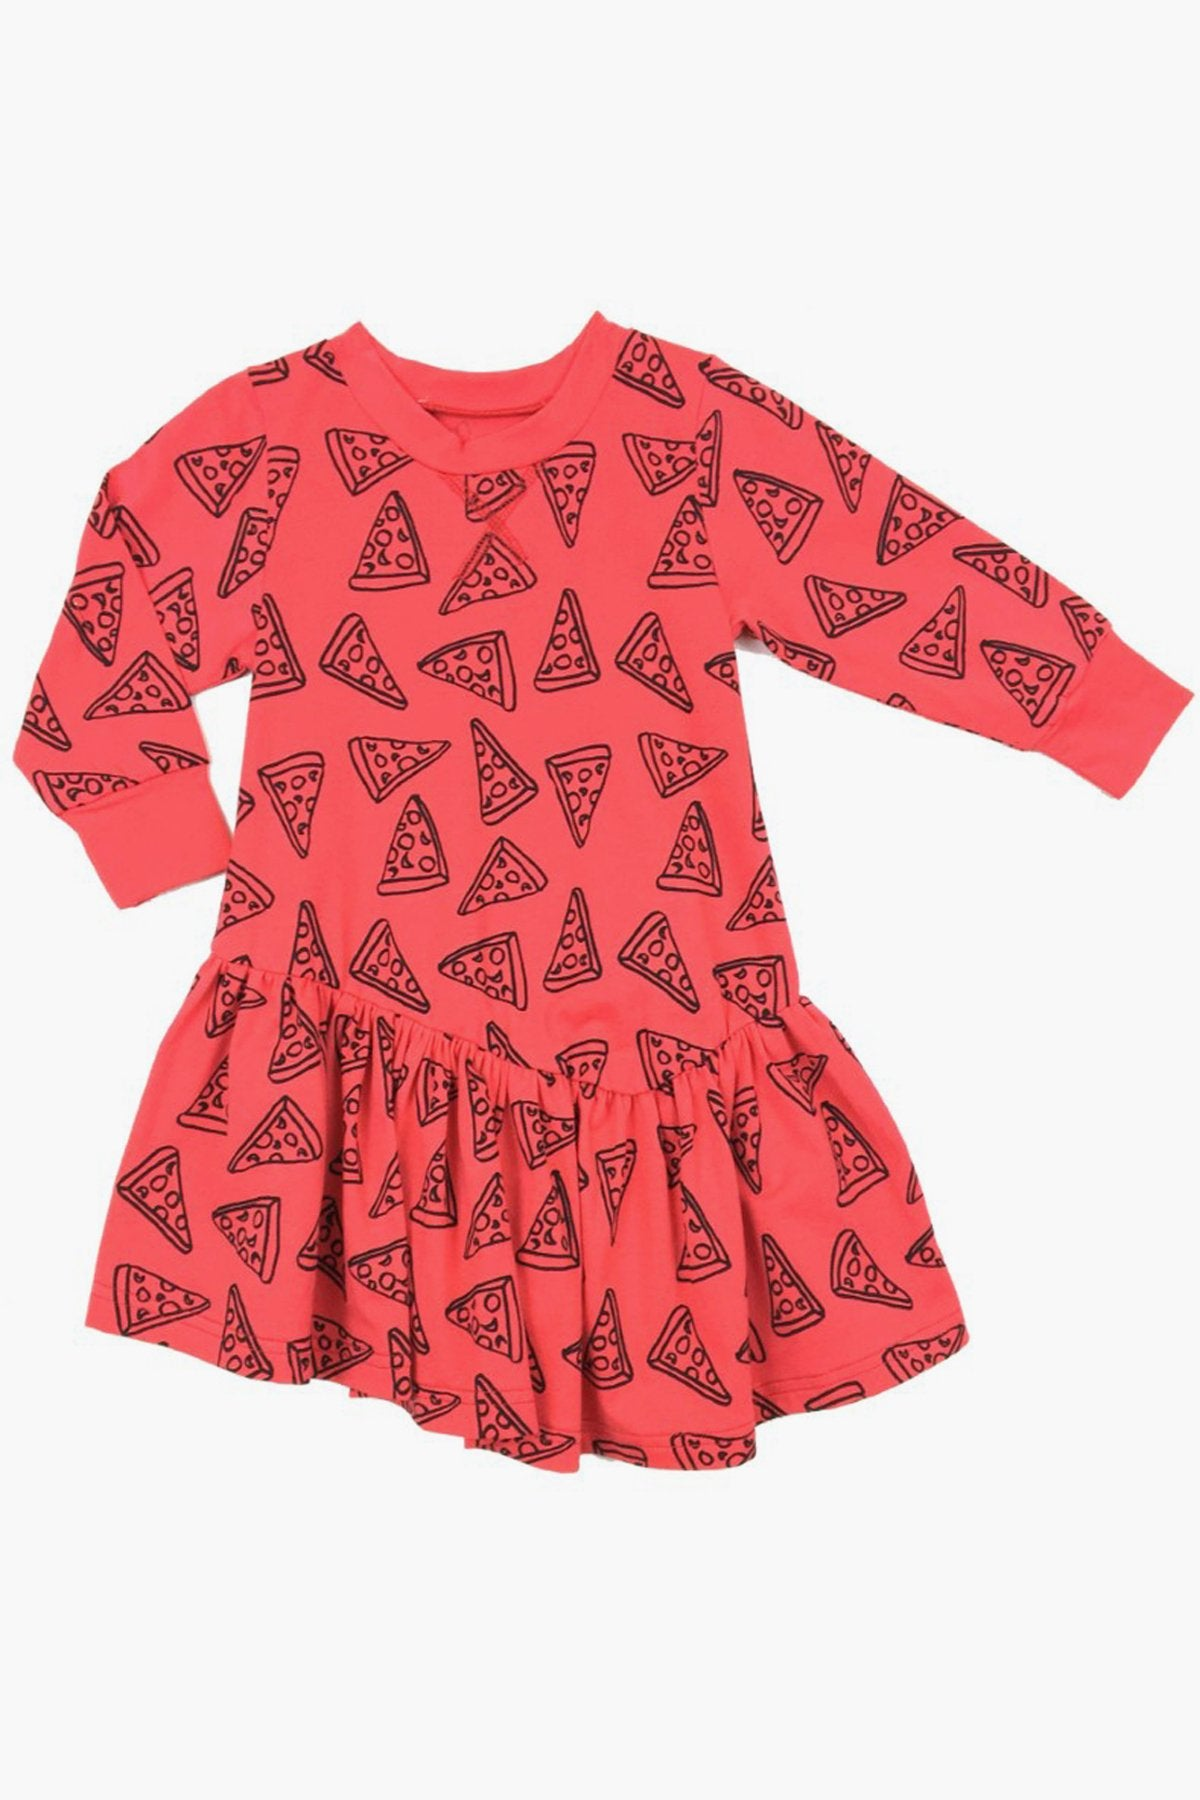 Peas and Queues Avery Girls Dress  - Sauce